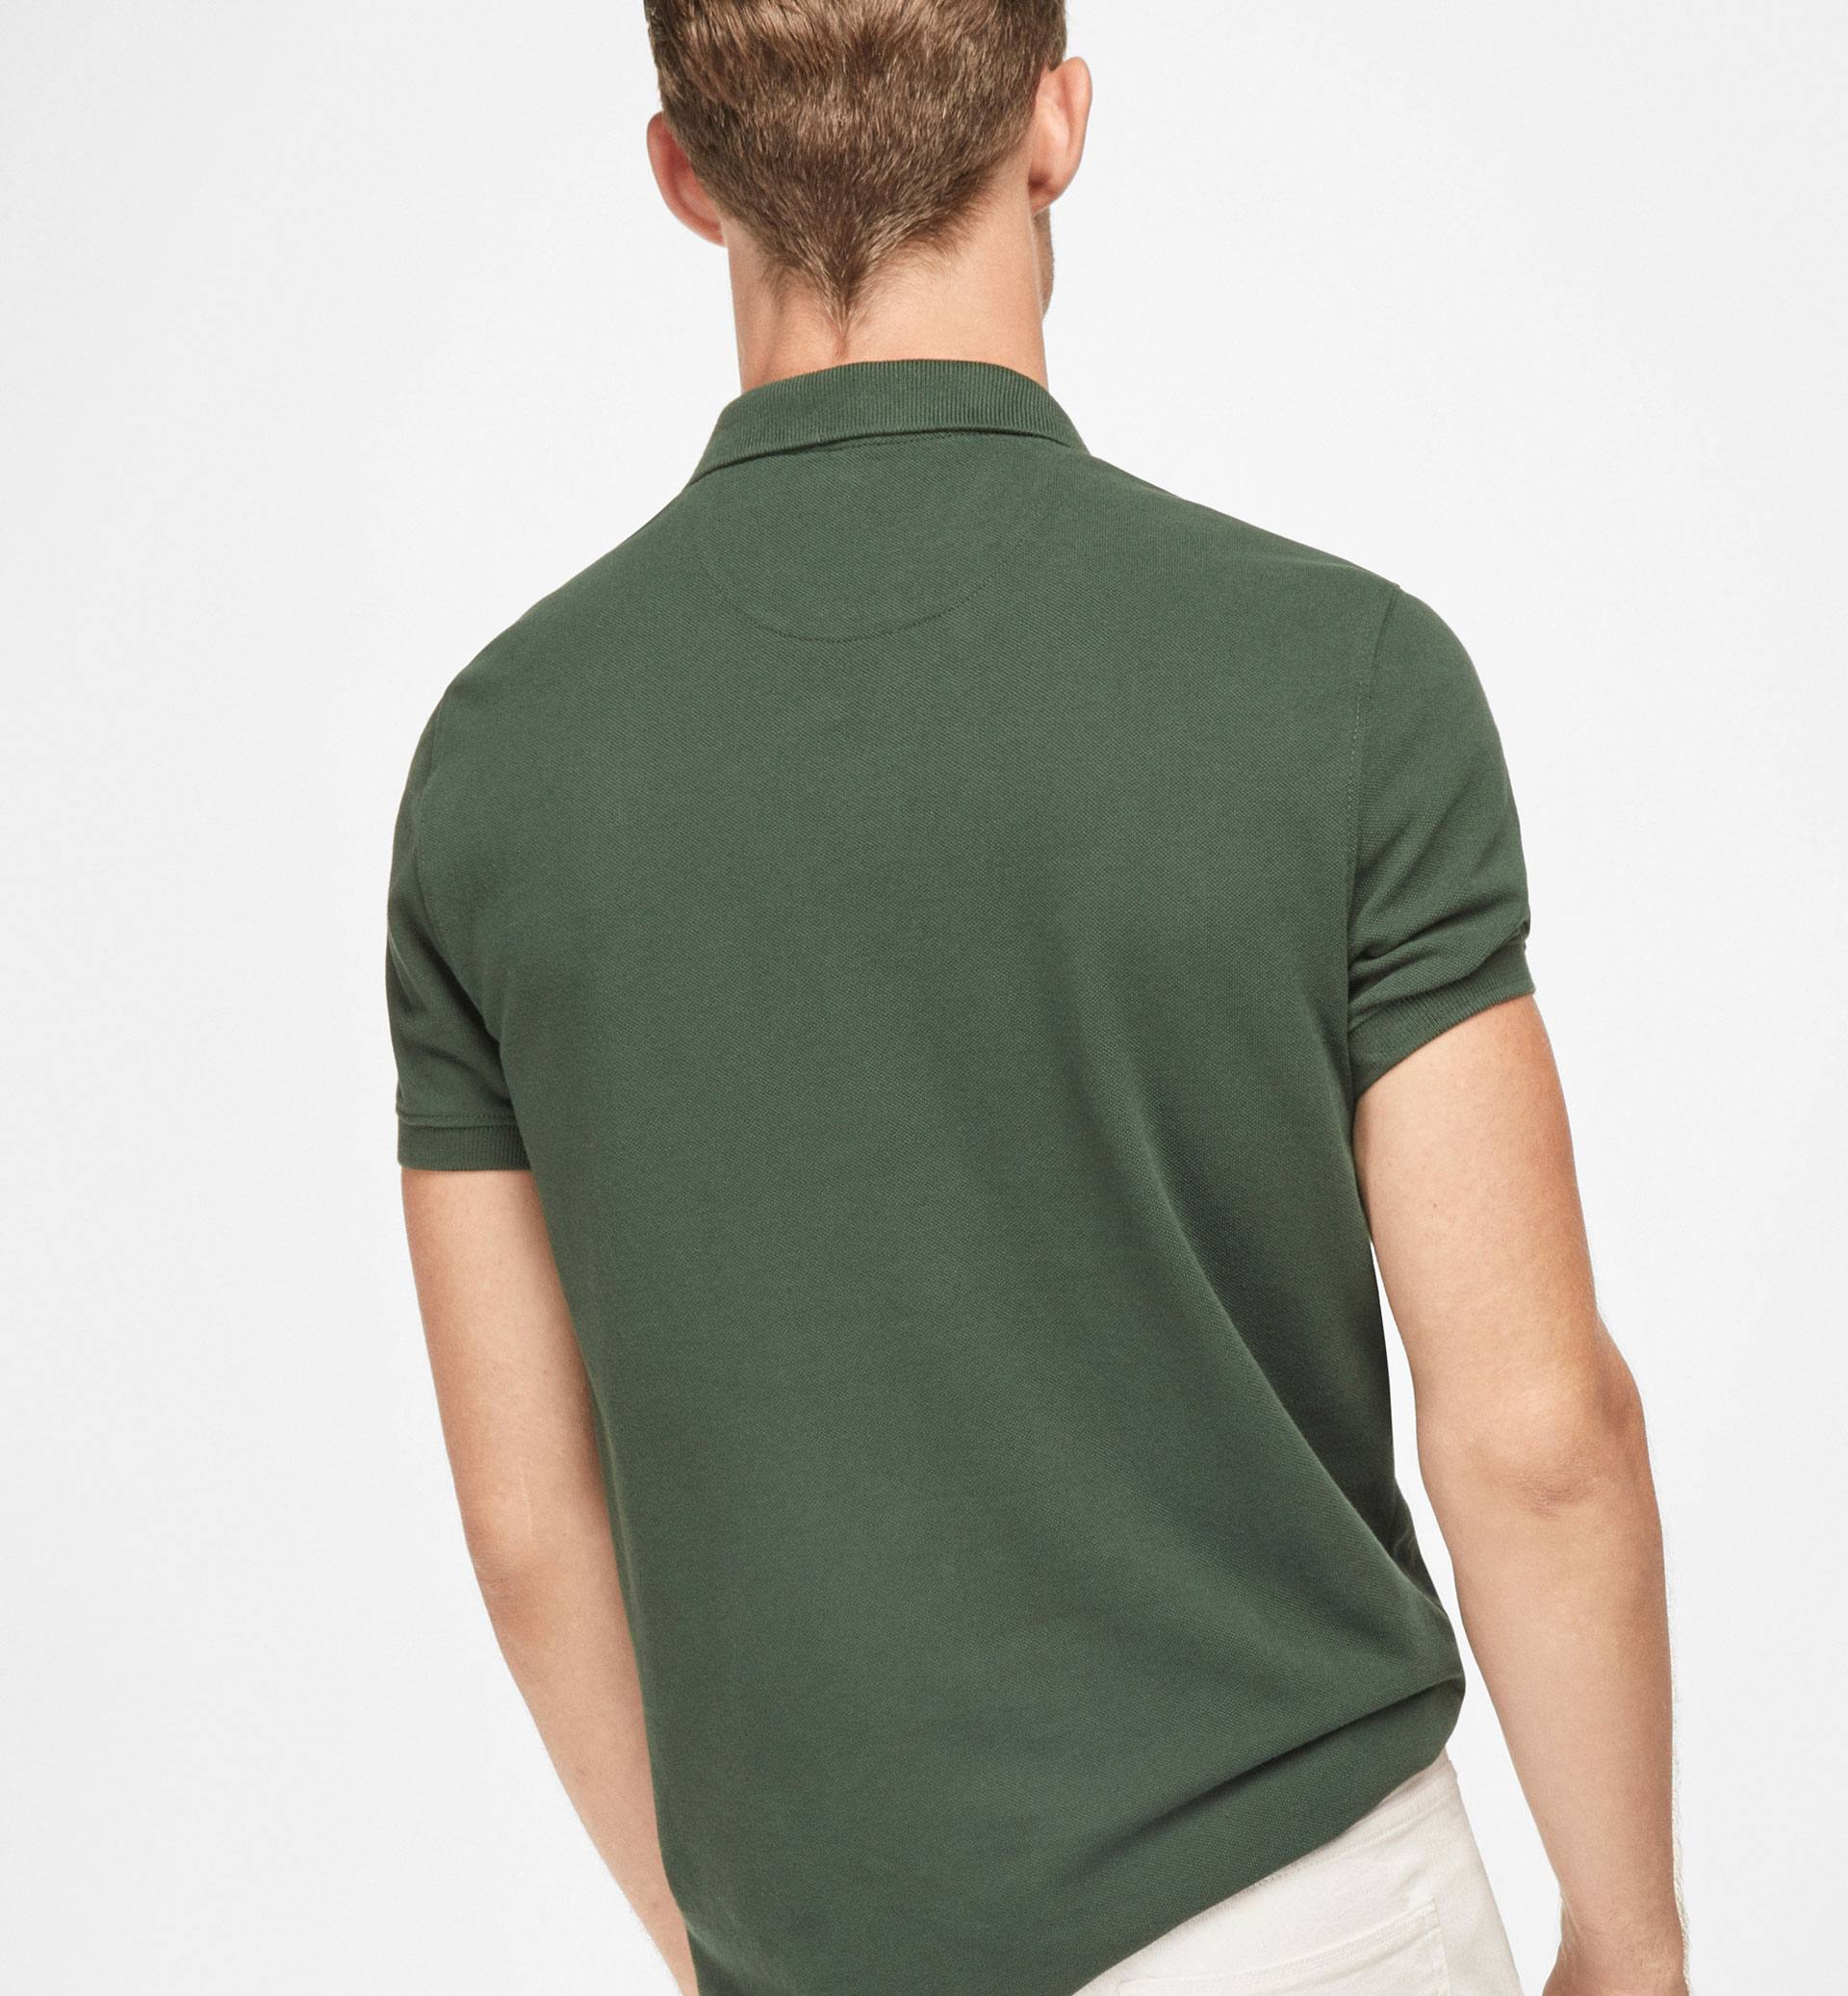 BASIC POLO SHIRT WITH CREST DETAIL